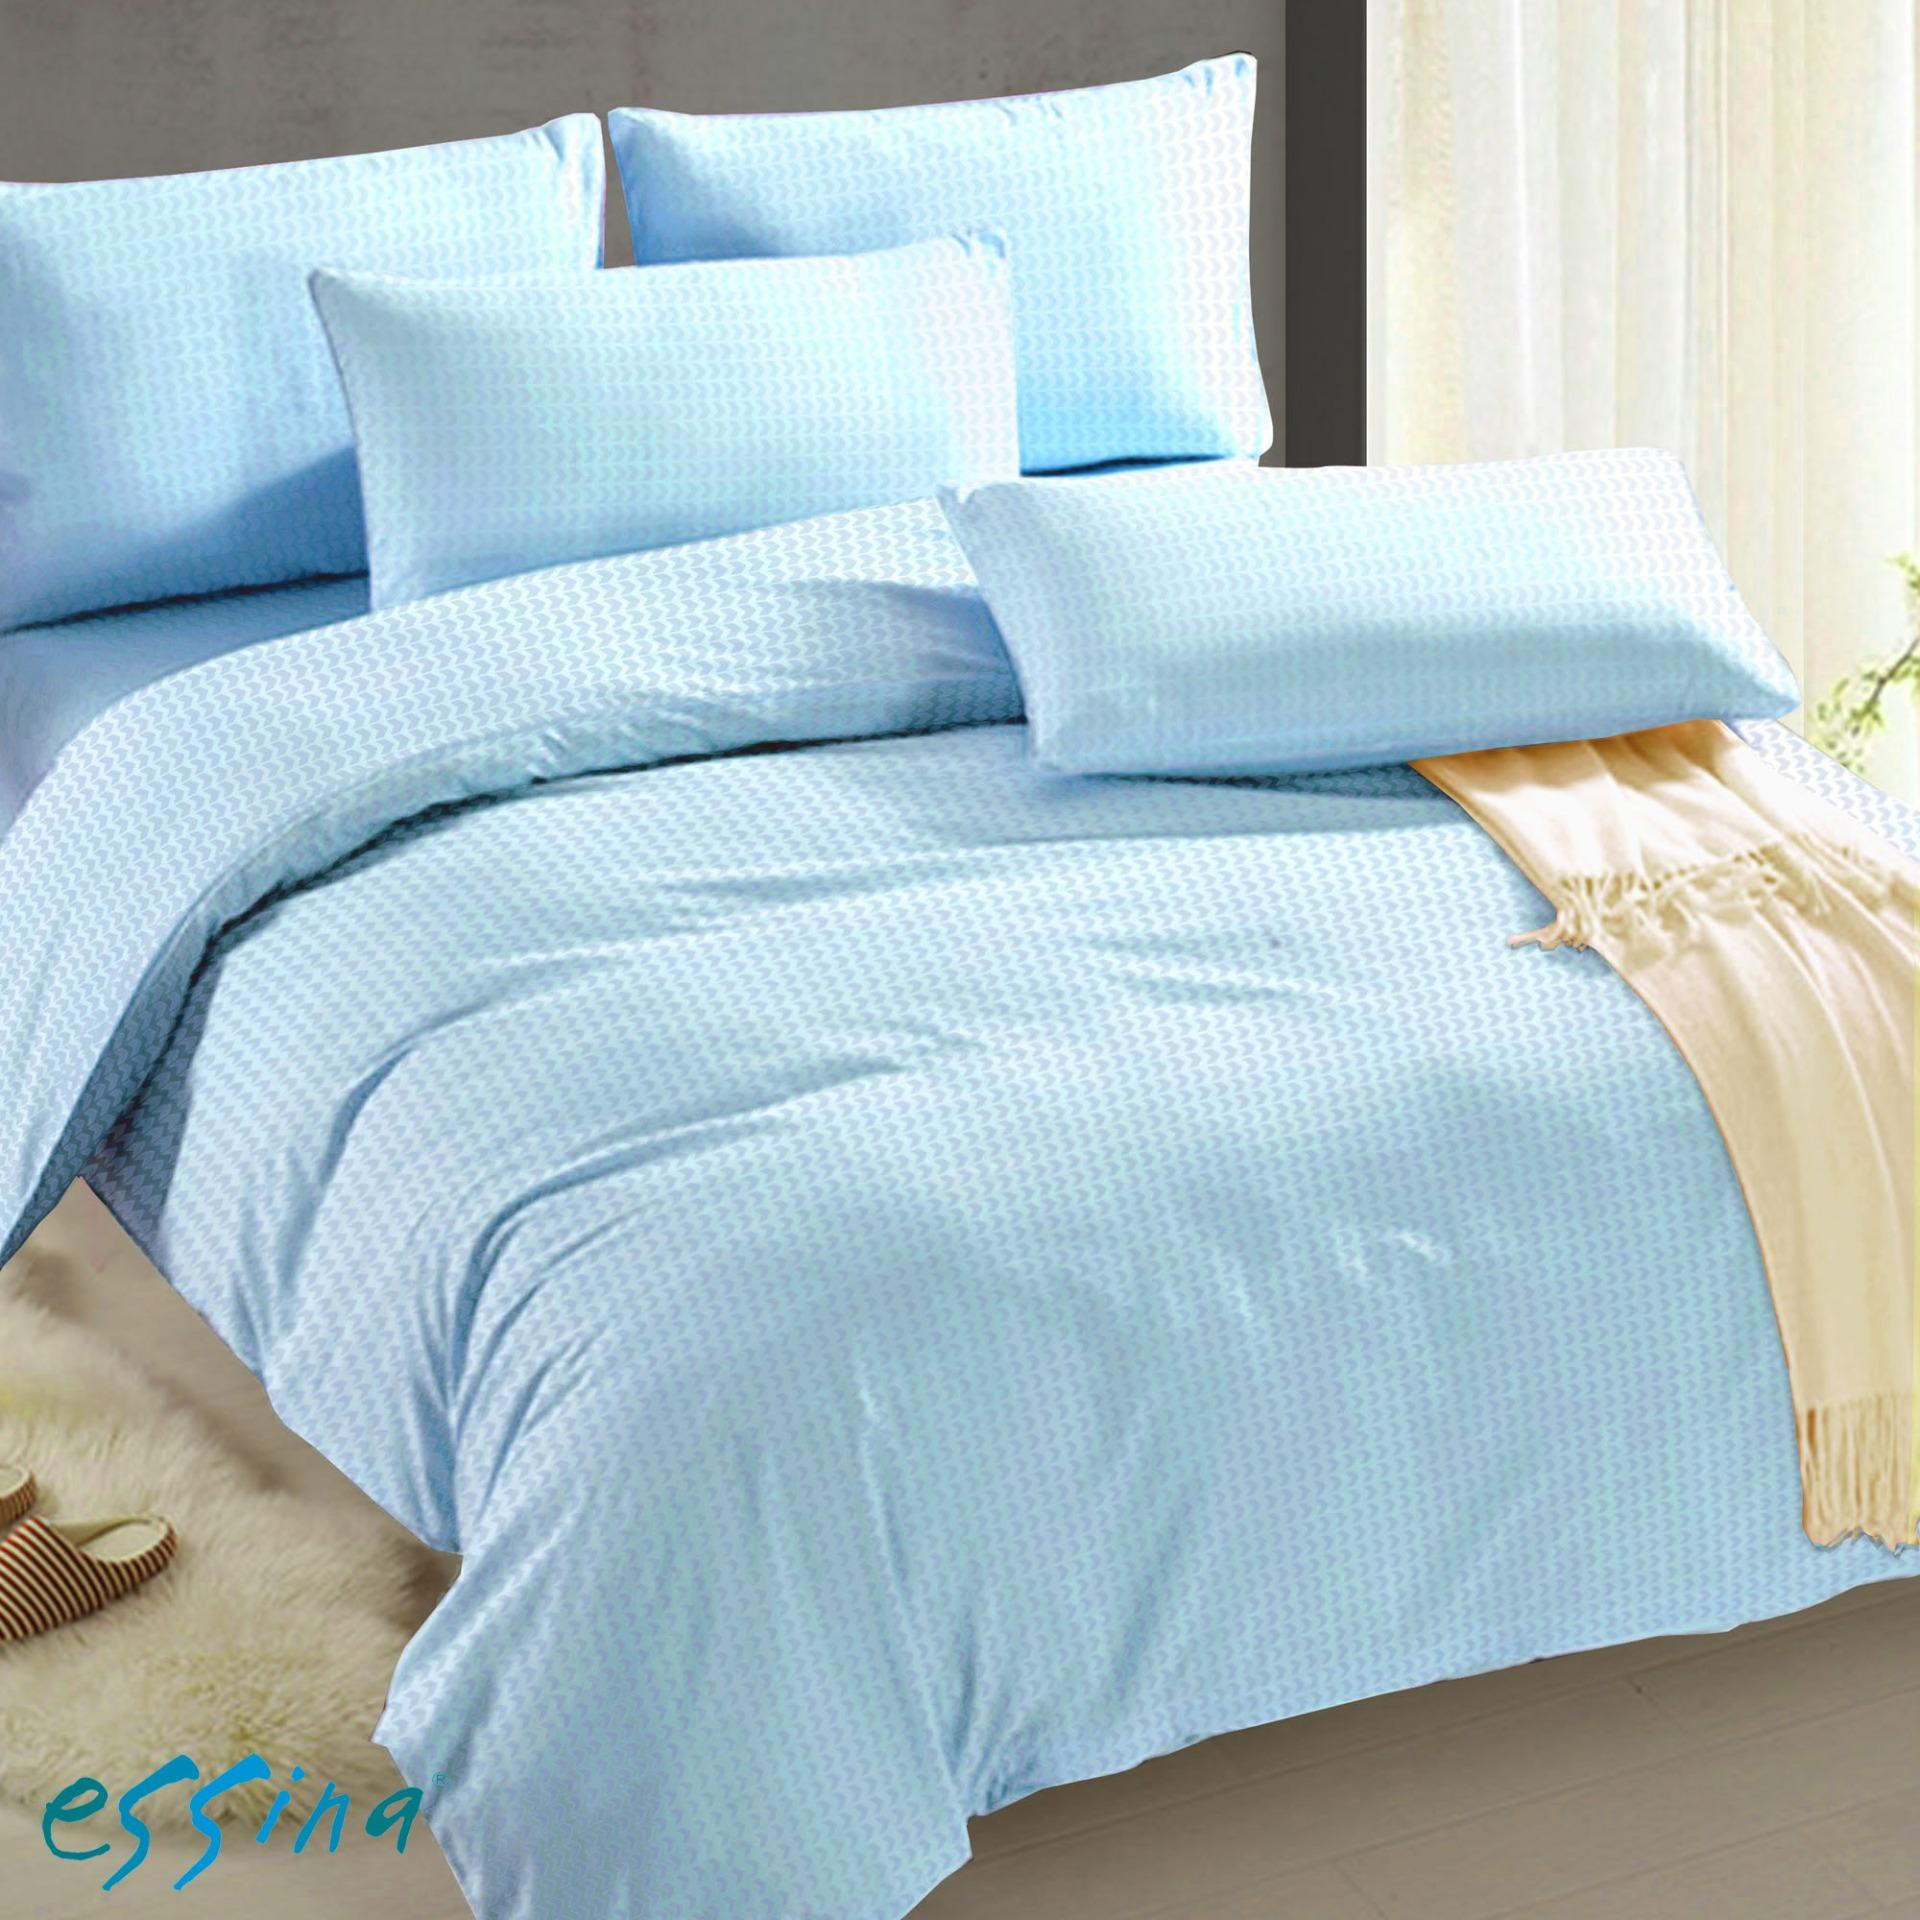 Essina Watermark Microfiber Plush Fitted Bedsheet Cadar Plain Color King / Queen / Super Single